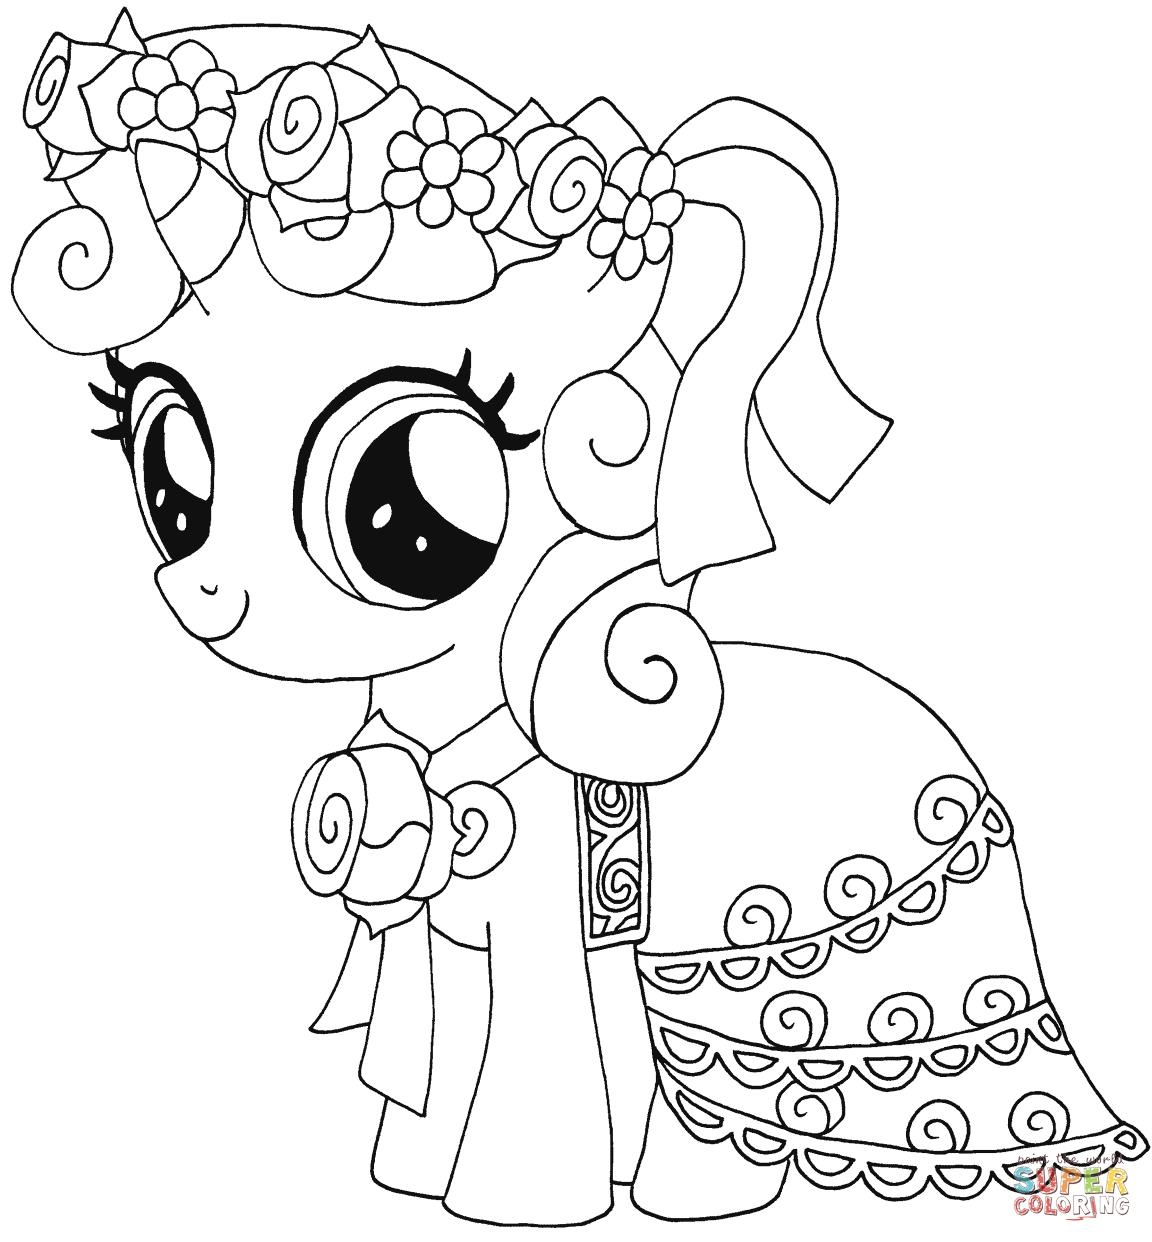 my little pony happy birthday coloring page ; my-little-pony-printable-coloring-pages-7-r-download-this-wallpaper